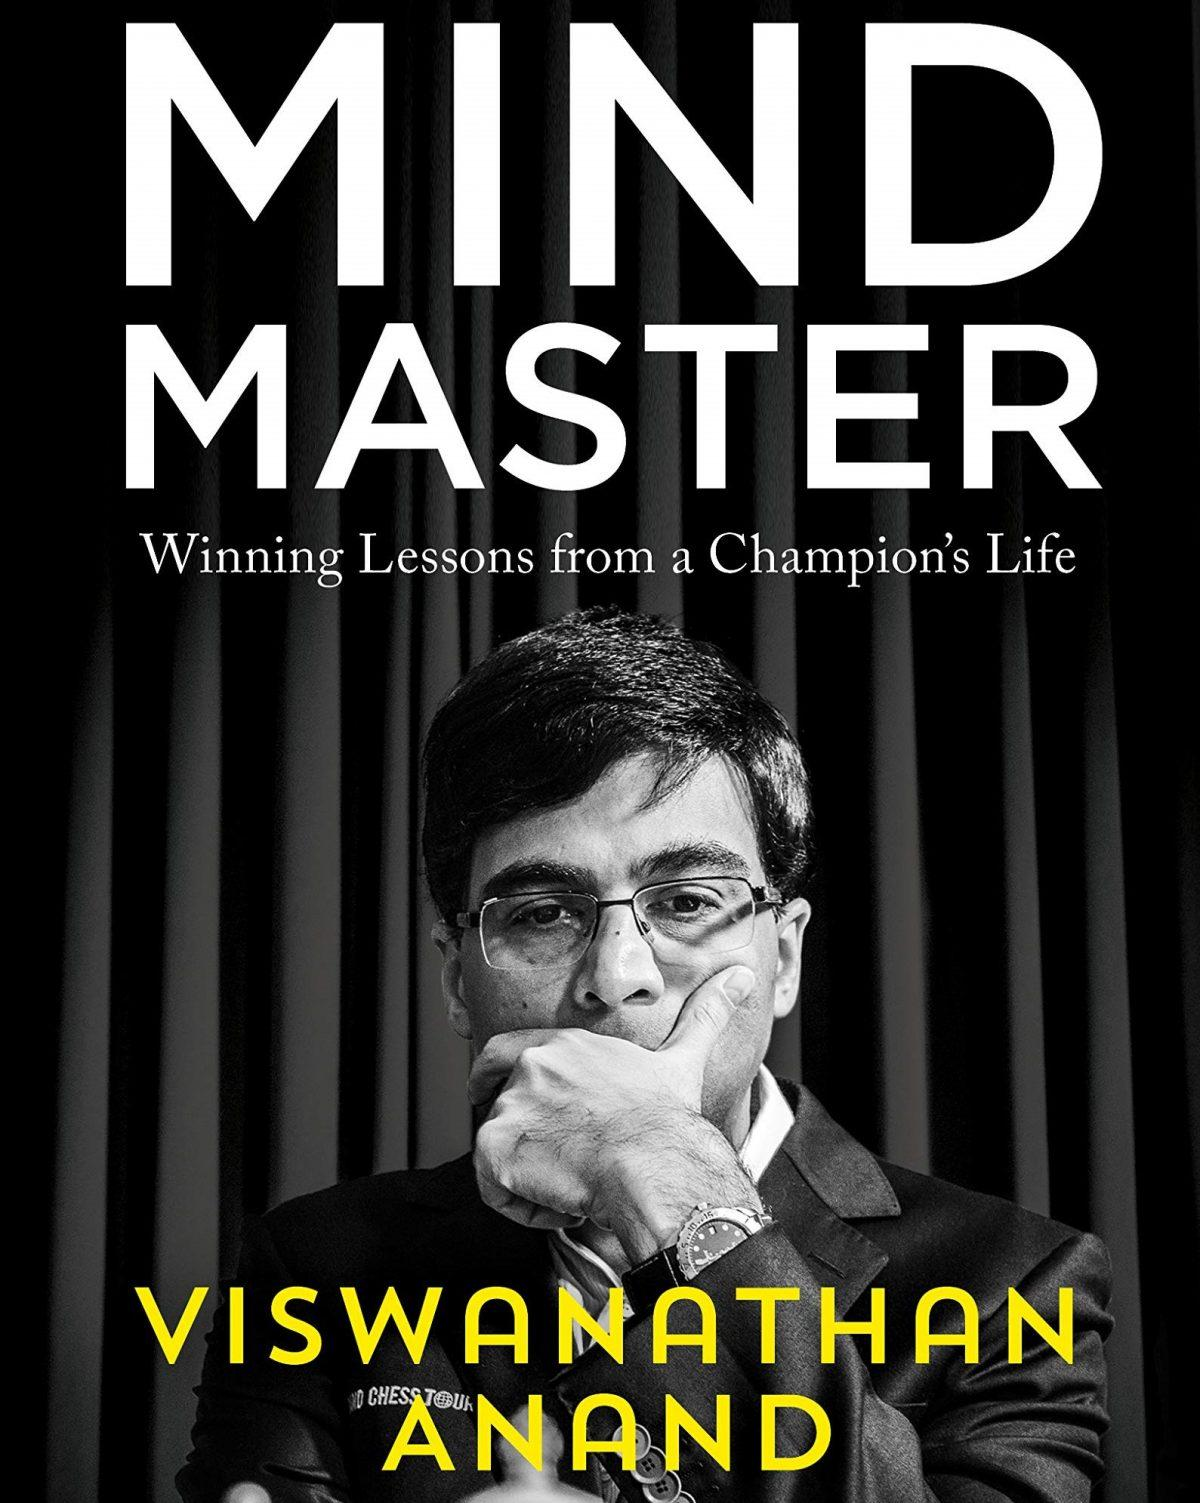 Viswanathan Anand launches his autobiography 'Mind Master'_40.1